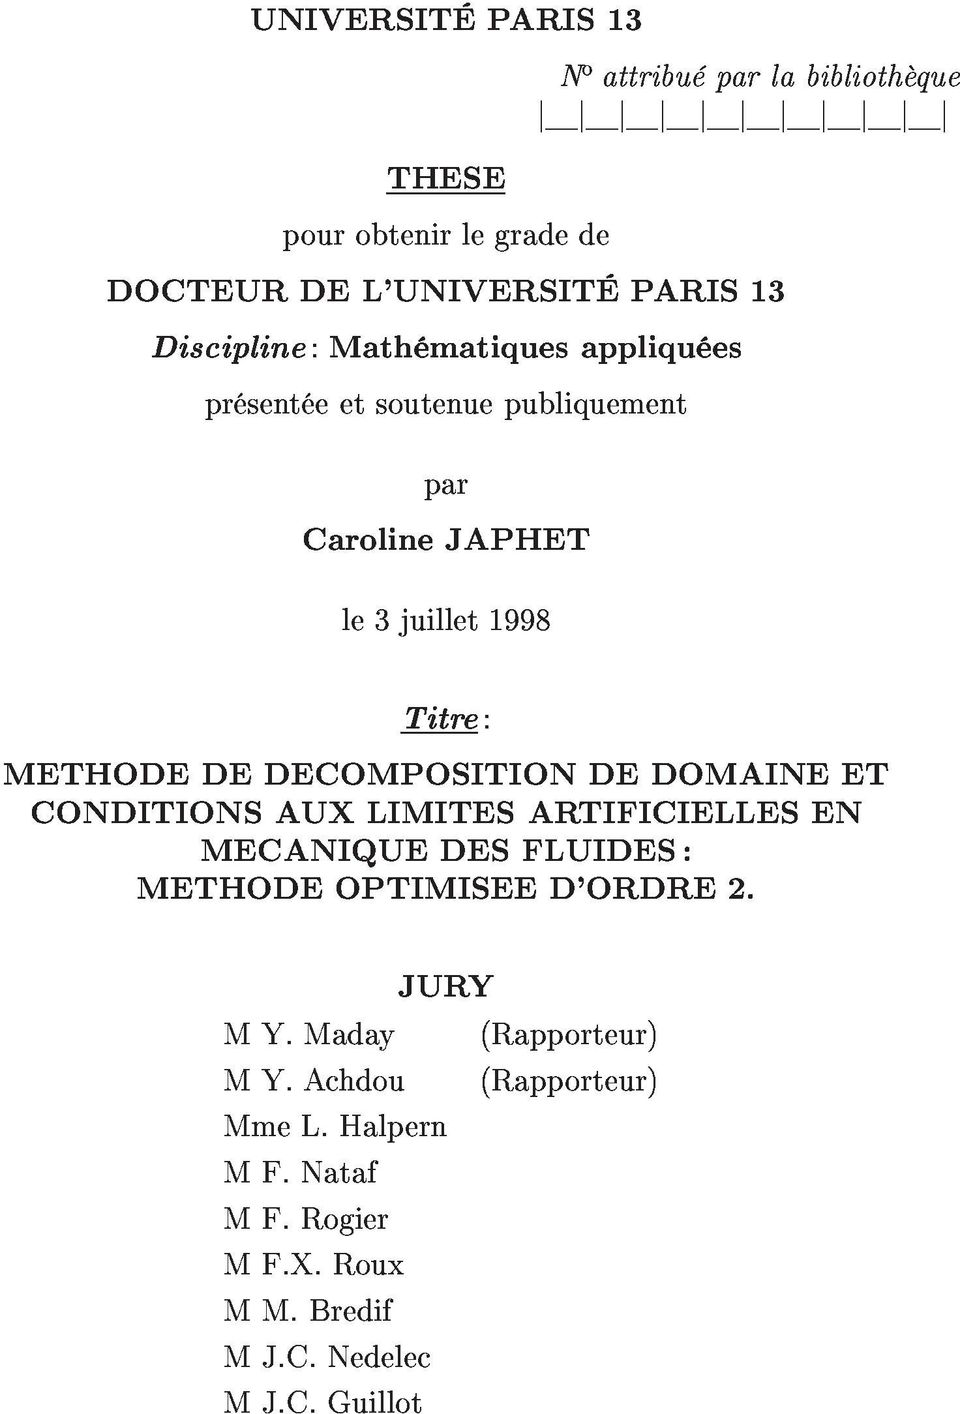 le3juillet1998 METHODEDEDECOMPOSITIONDEDOMAINEET CONDITIONSAUXLIMITESARTIFICIELLESEN Titre: